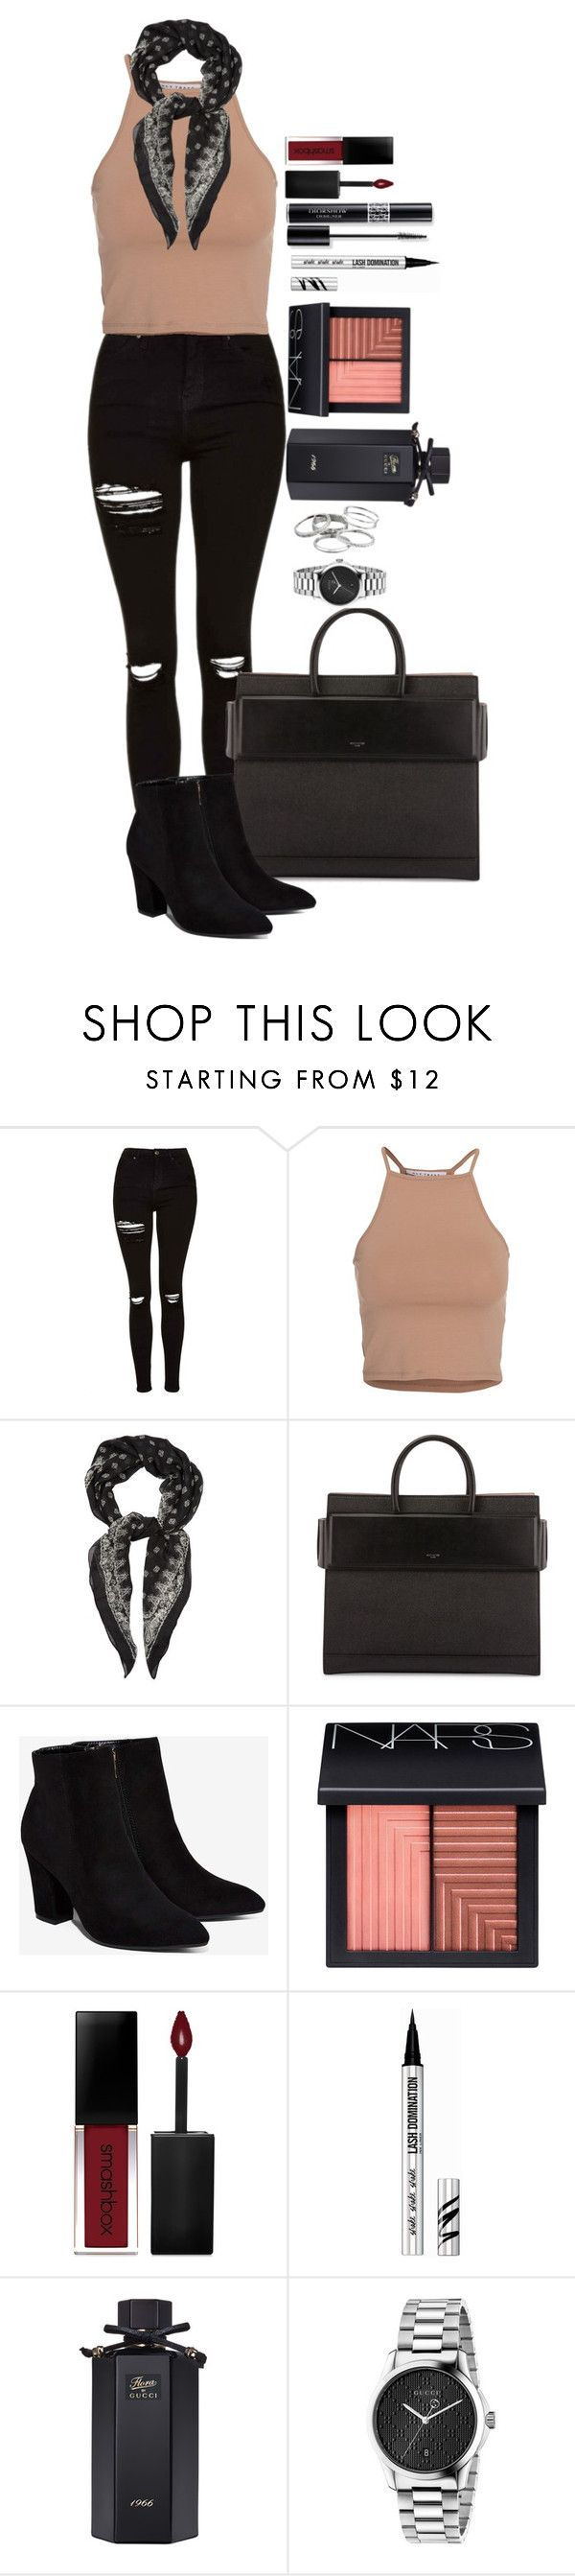 """""""Untitled #1607"""" by fabianarveloc on Polyvore featuring Topshop, NLY Trend, Yves Saint Laurent, Givenchy, Billini, NARS Cosmetics, Christian Dior, Smashbox, Bare Escentuals and Gucci"""